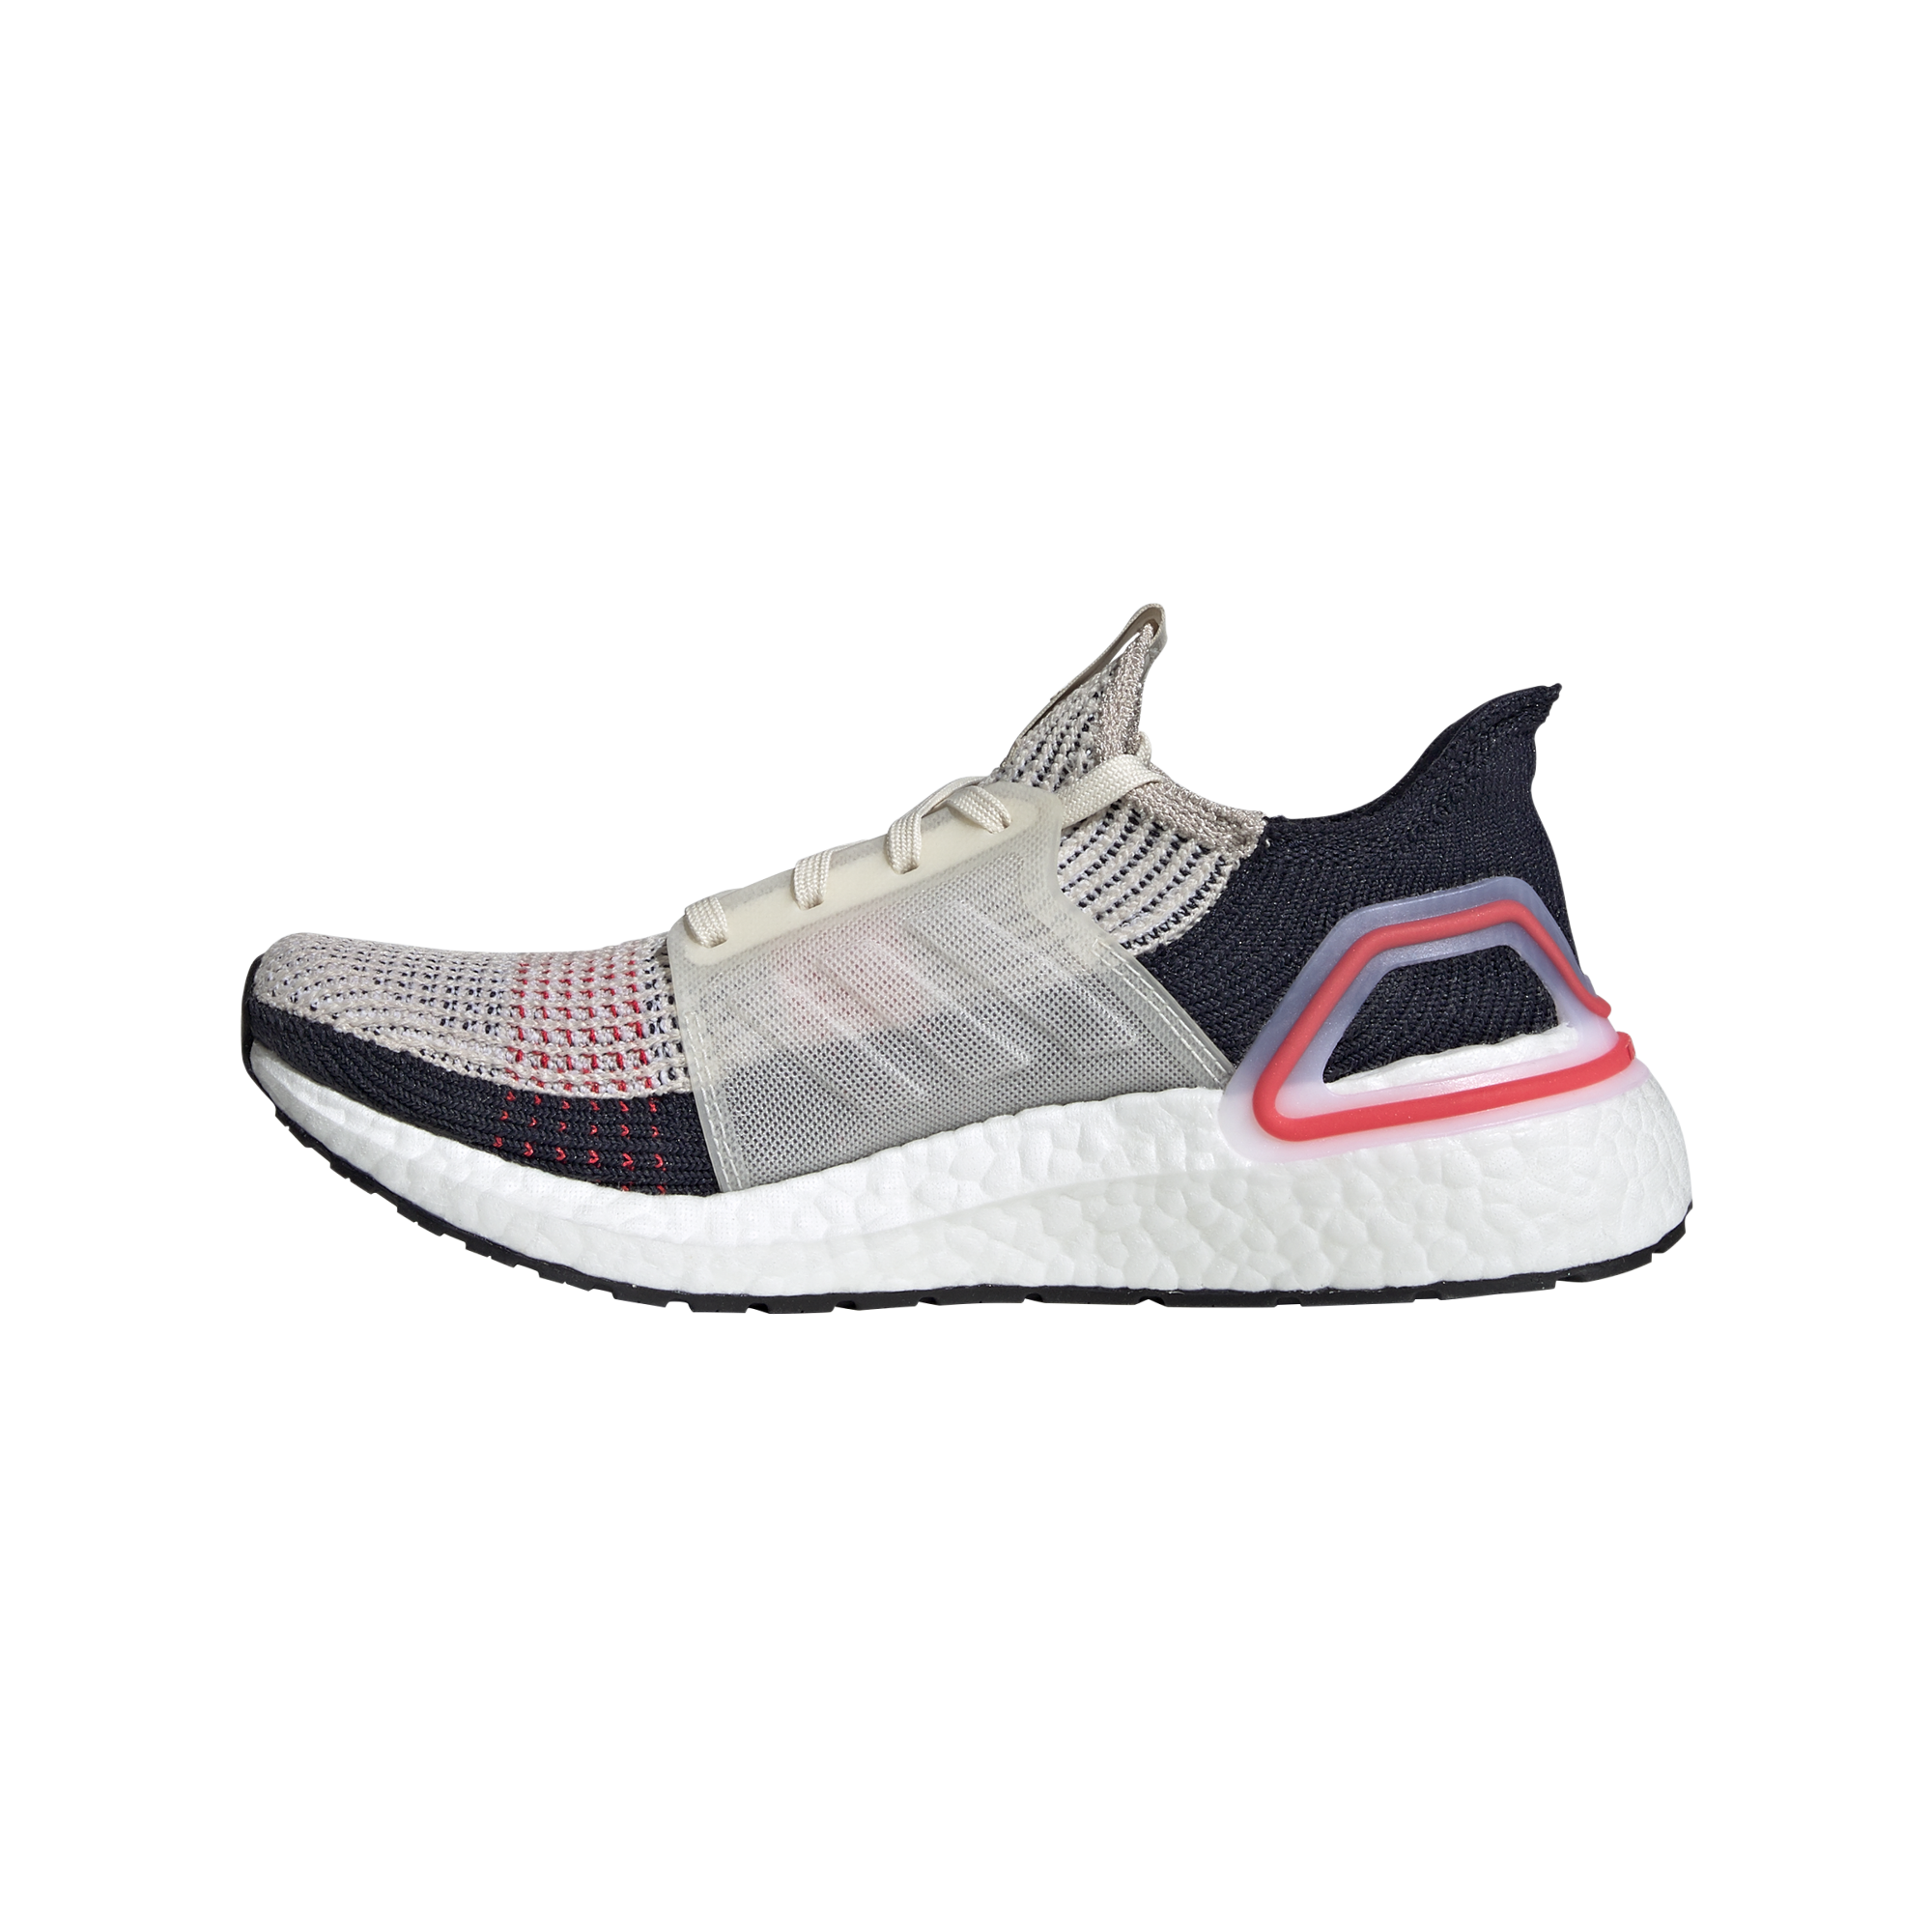 5c9d1b6abff The adidas Ultra Boost  19 is available for men and women at Fleet Feet Old  Town exclusively.